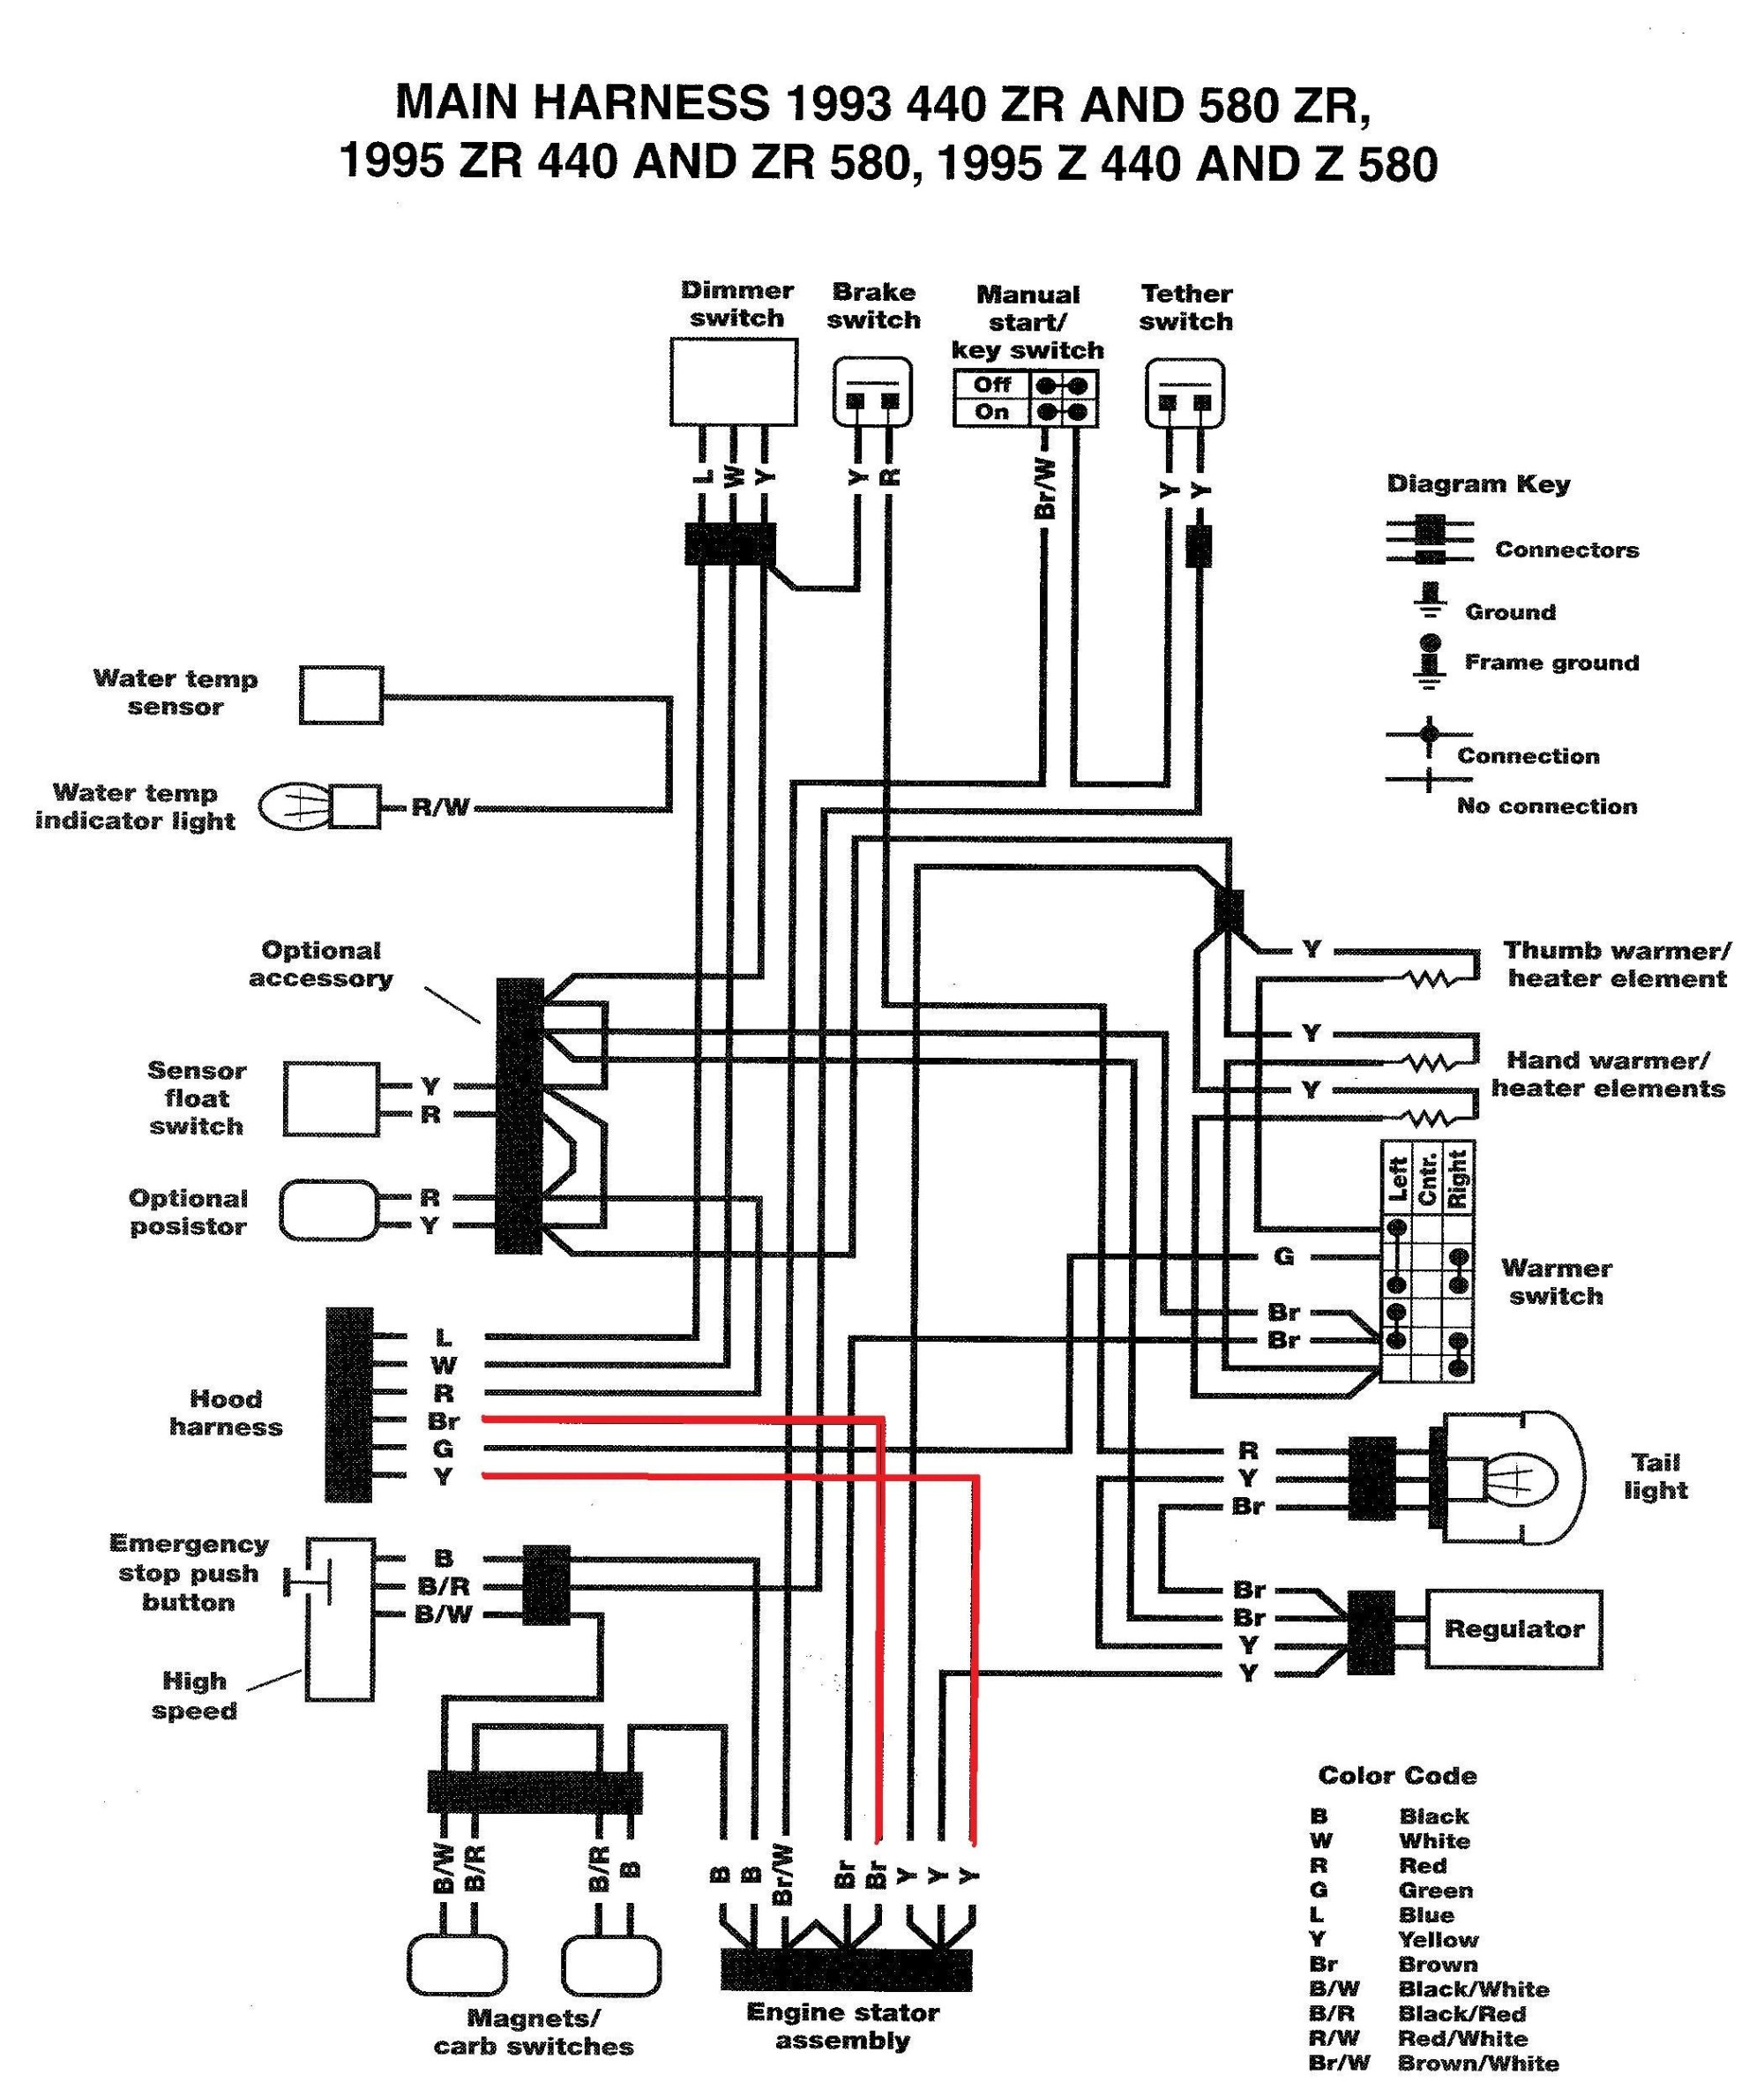 hight resolution of wiring diagram for winch on yamaha grizzly schema diagram database battery for yamaha grizzly wiring diagram